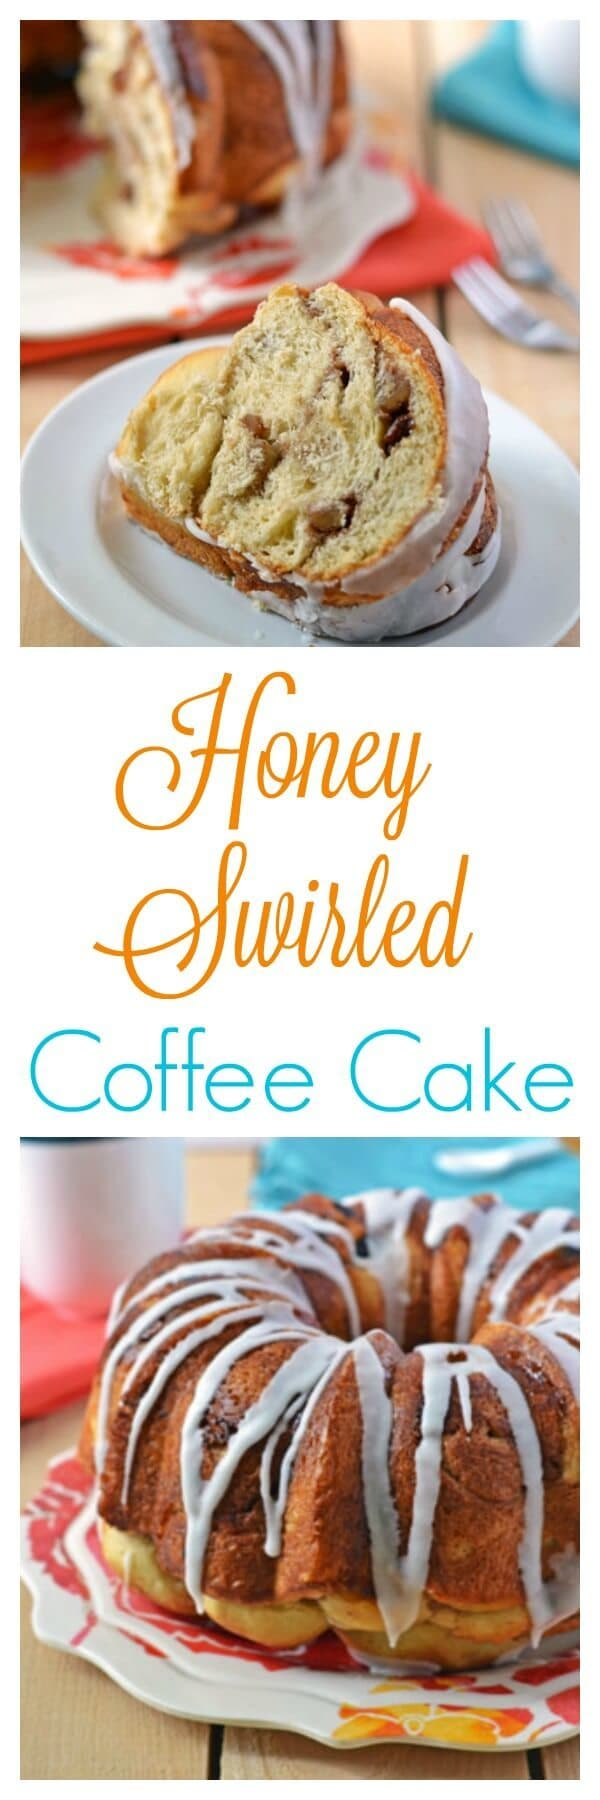 Honey Swirled Coffee Cake. The sweetest way to start your day!